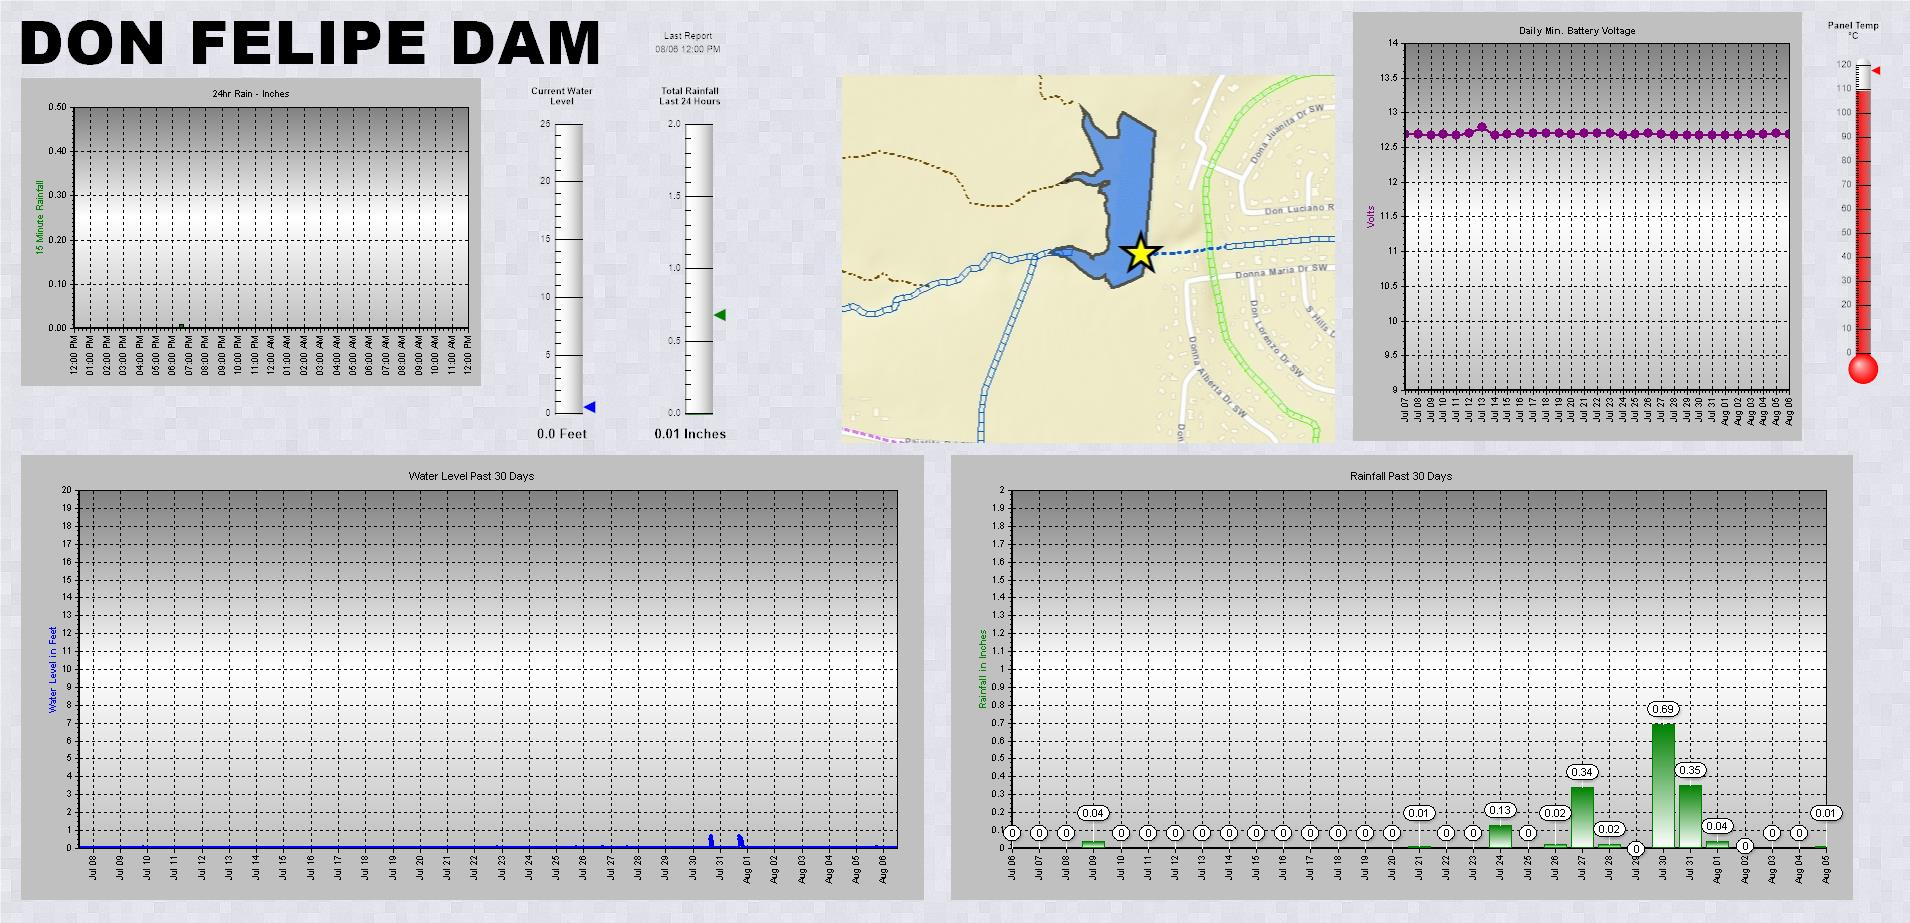 Don Felipe Dam telemetry data